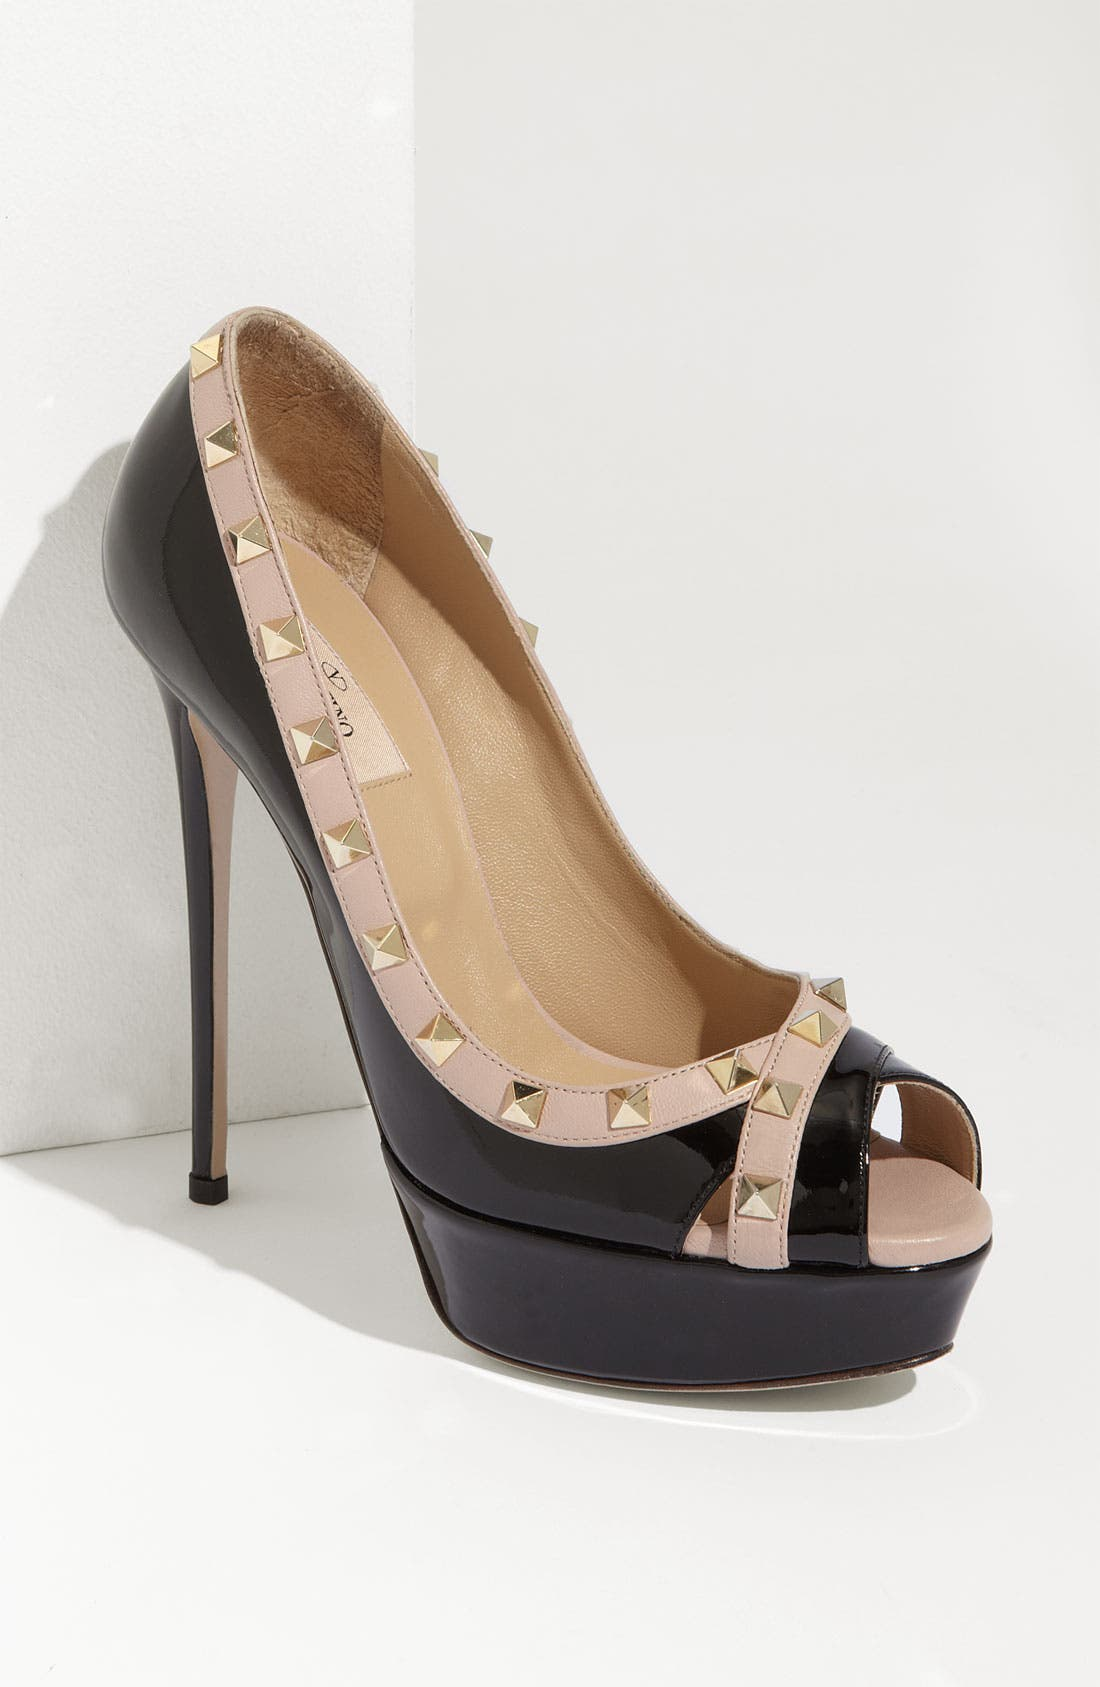 Alternate Image 1 Selected - Valentino 'Rockstud' Open Toe Pump